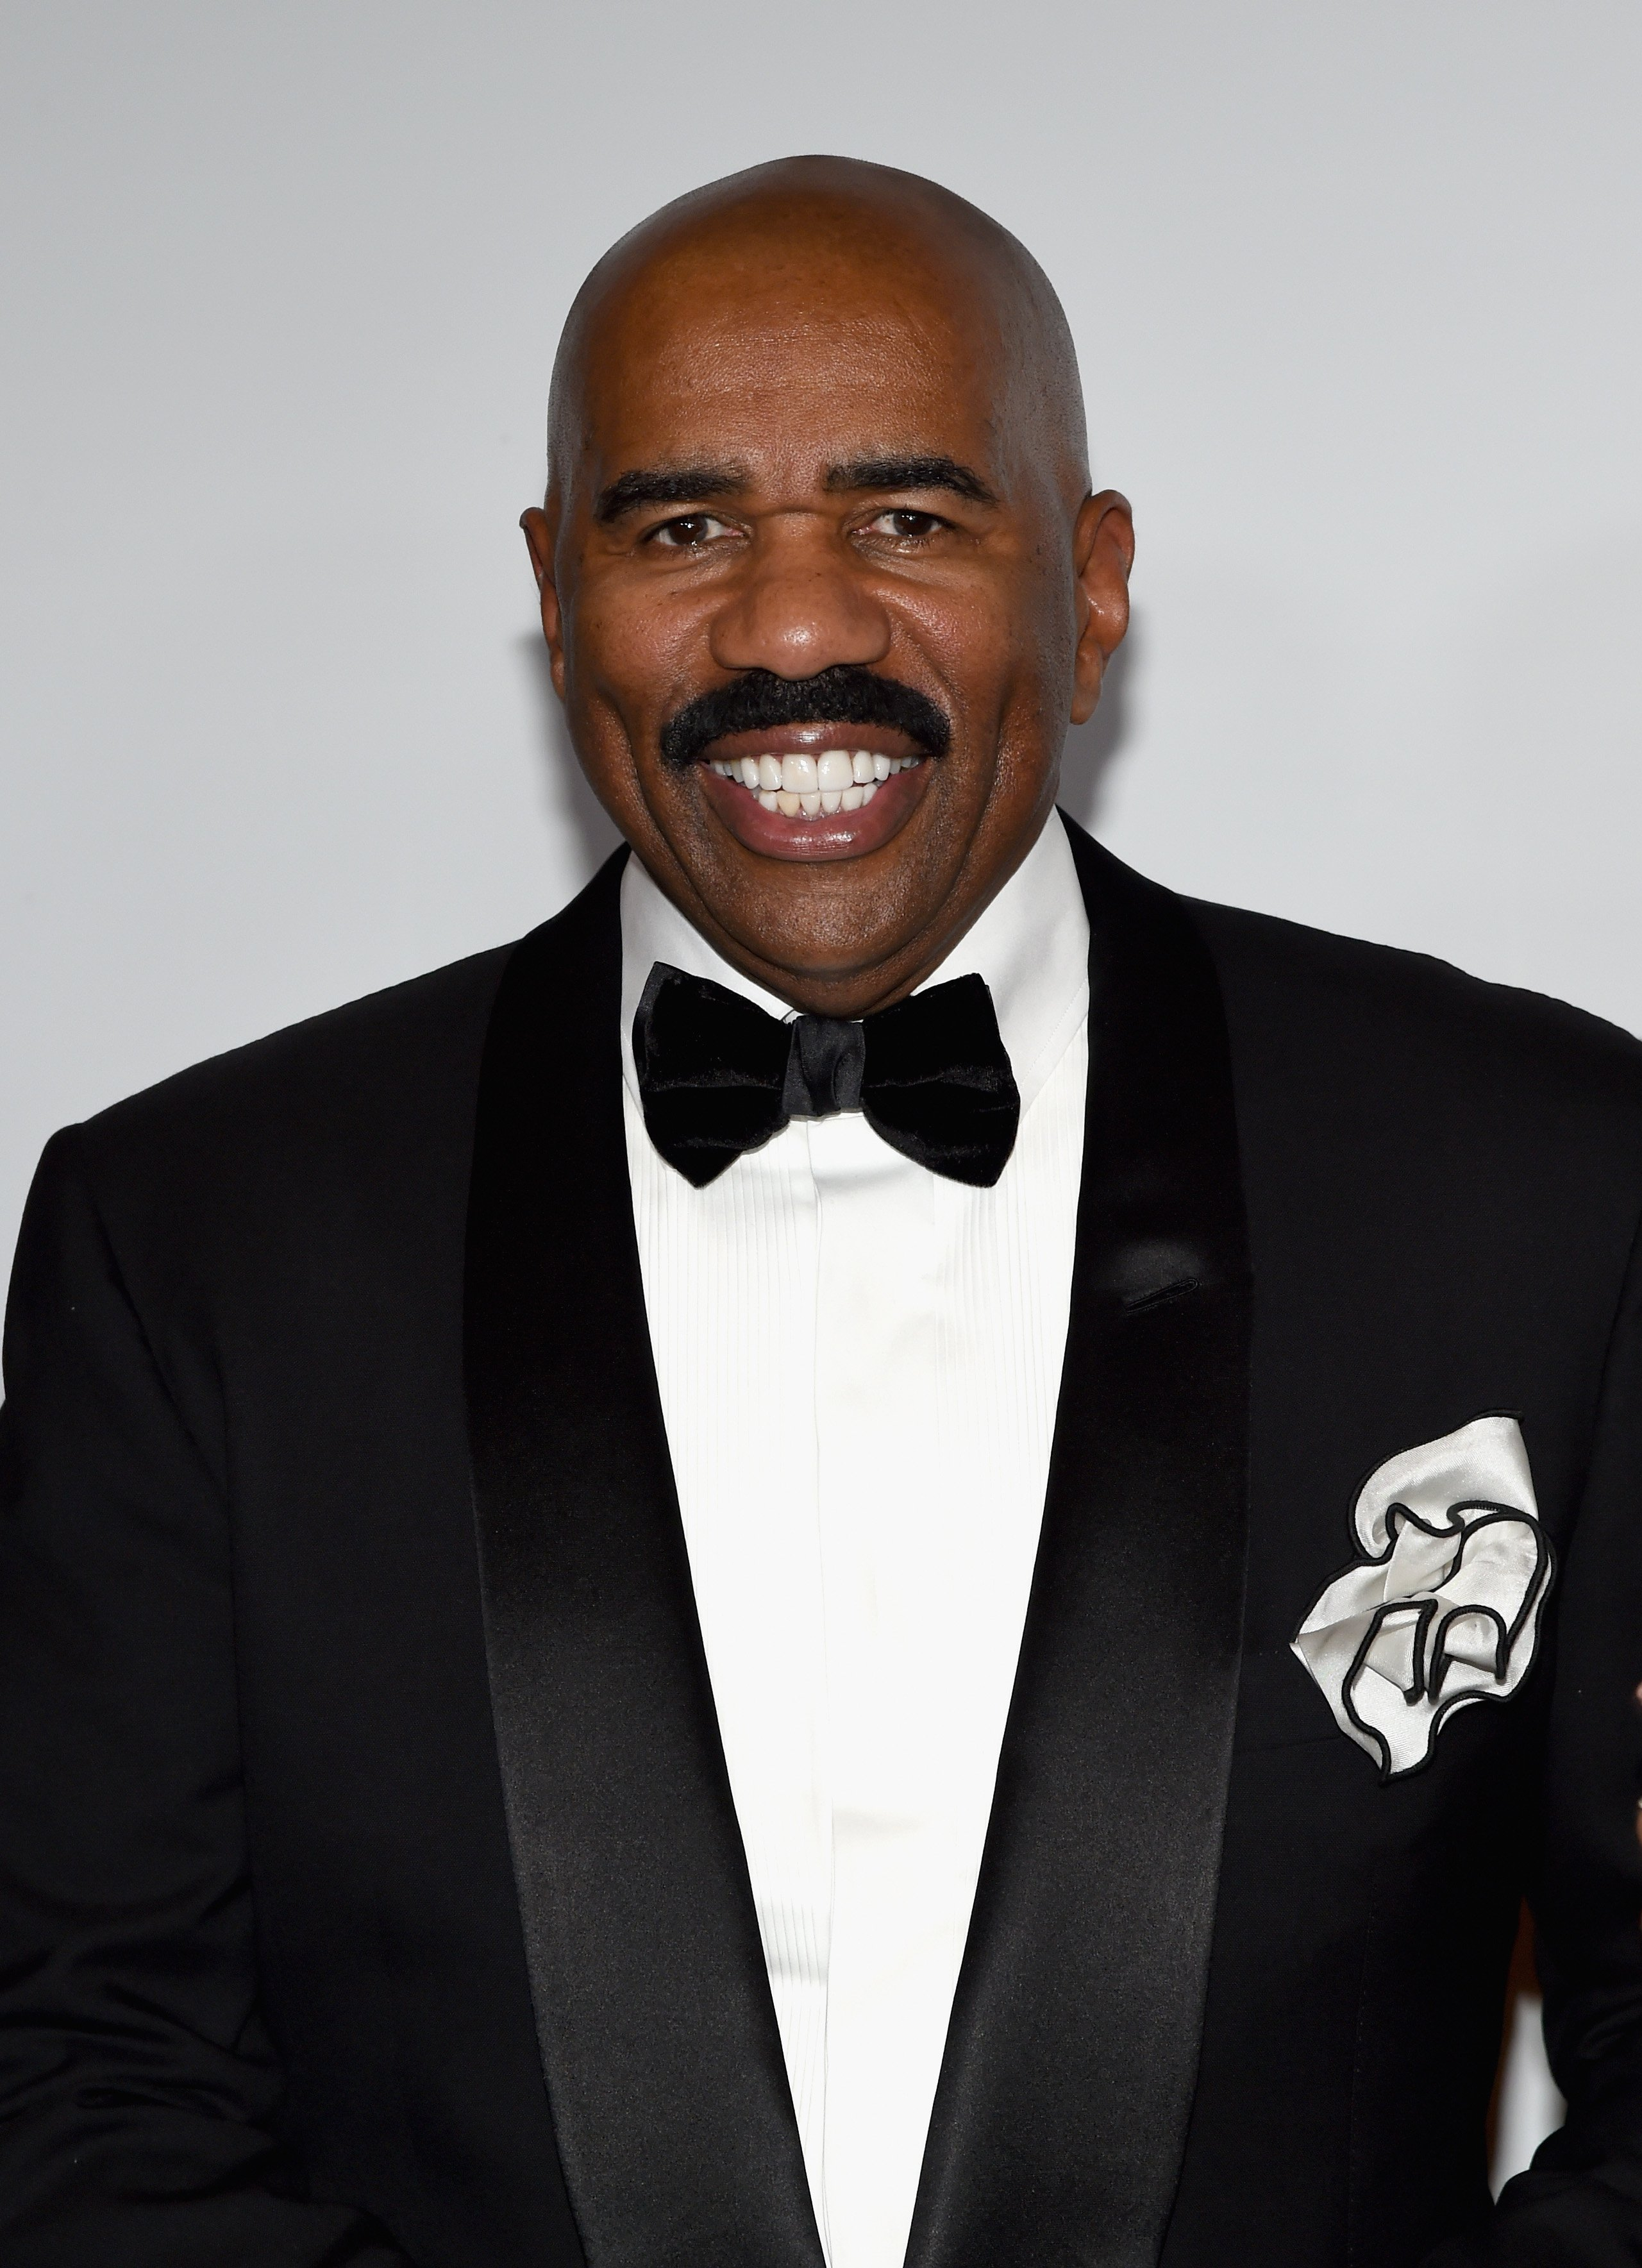 Steve Harvey at the 2015 Miss Universe Pageant in Planet Hollywood Resort & Casino on December 20, 2015 in Las Vegas, Nevada.   Photo: Getty Images